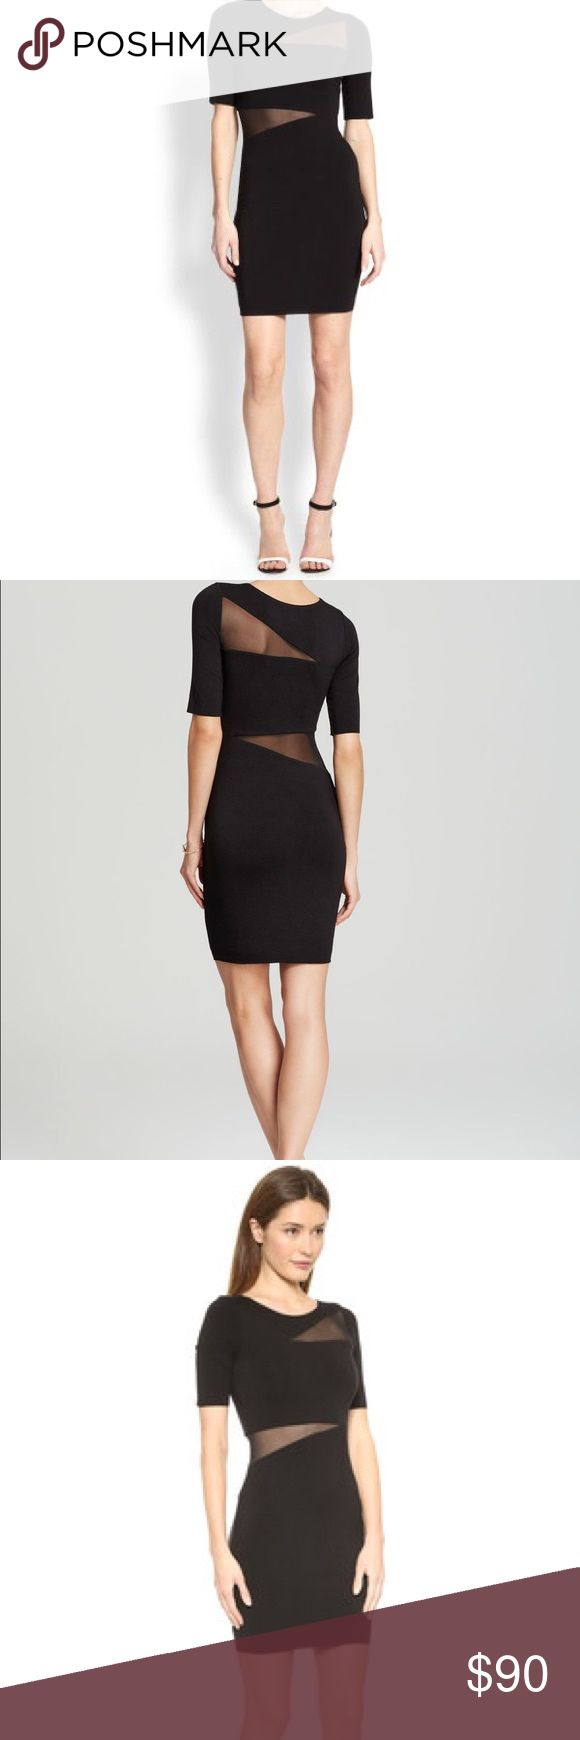 Bailey 44 Black Sheer-paneled Dress Bailey 44 Women's Black Vanishing Point Asymmetrical Sheer-paneled Dress Bailey 44 Dresses